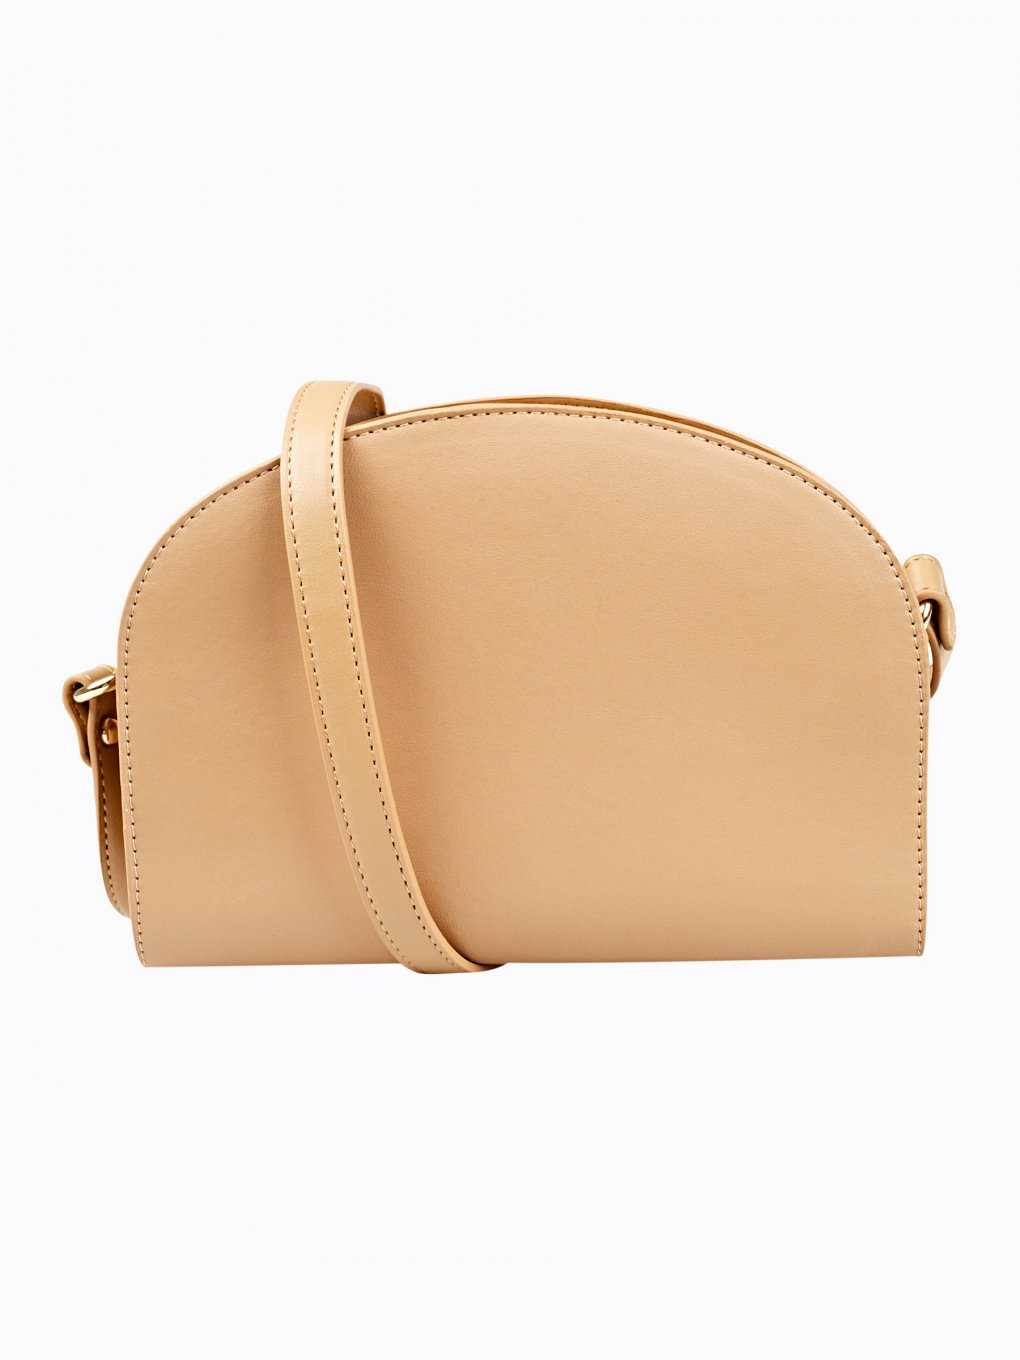 Half-moon cross body bag